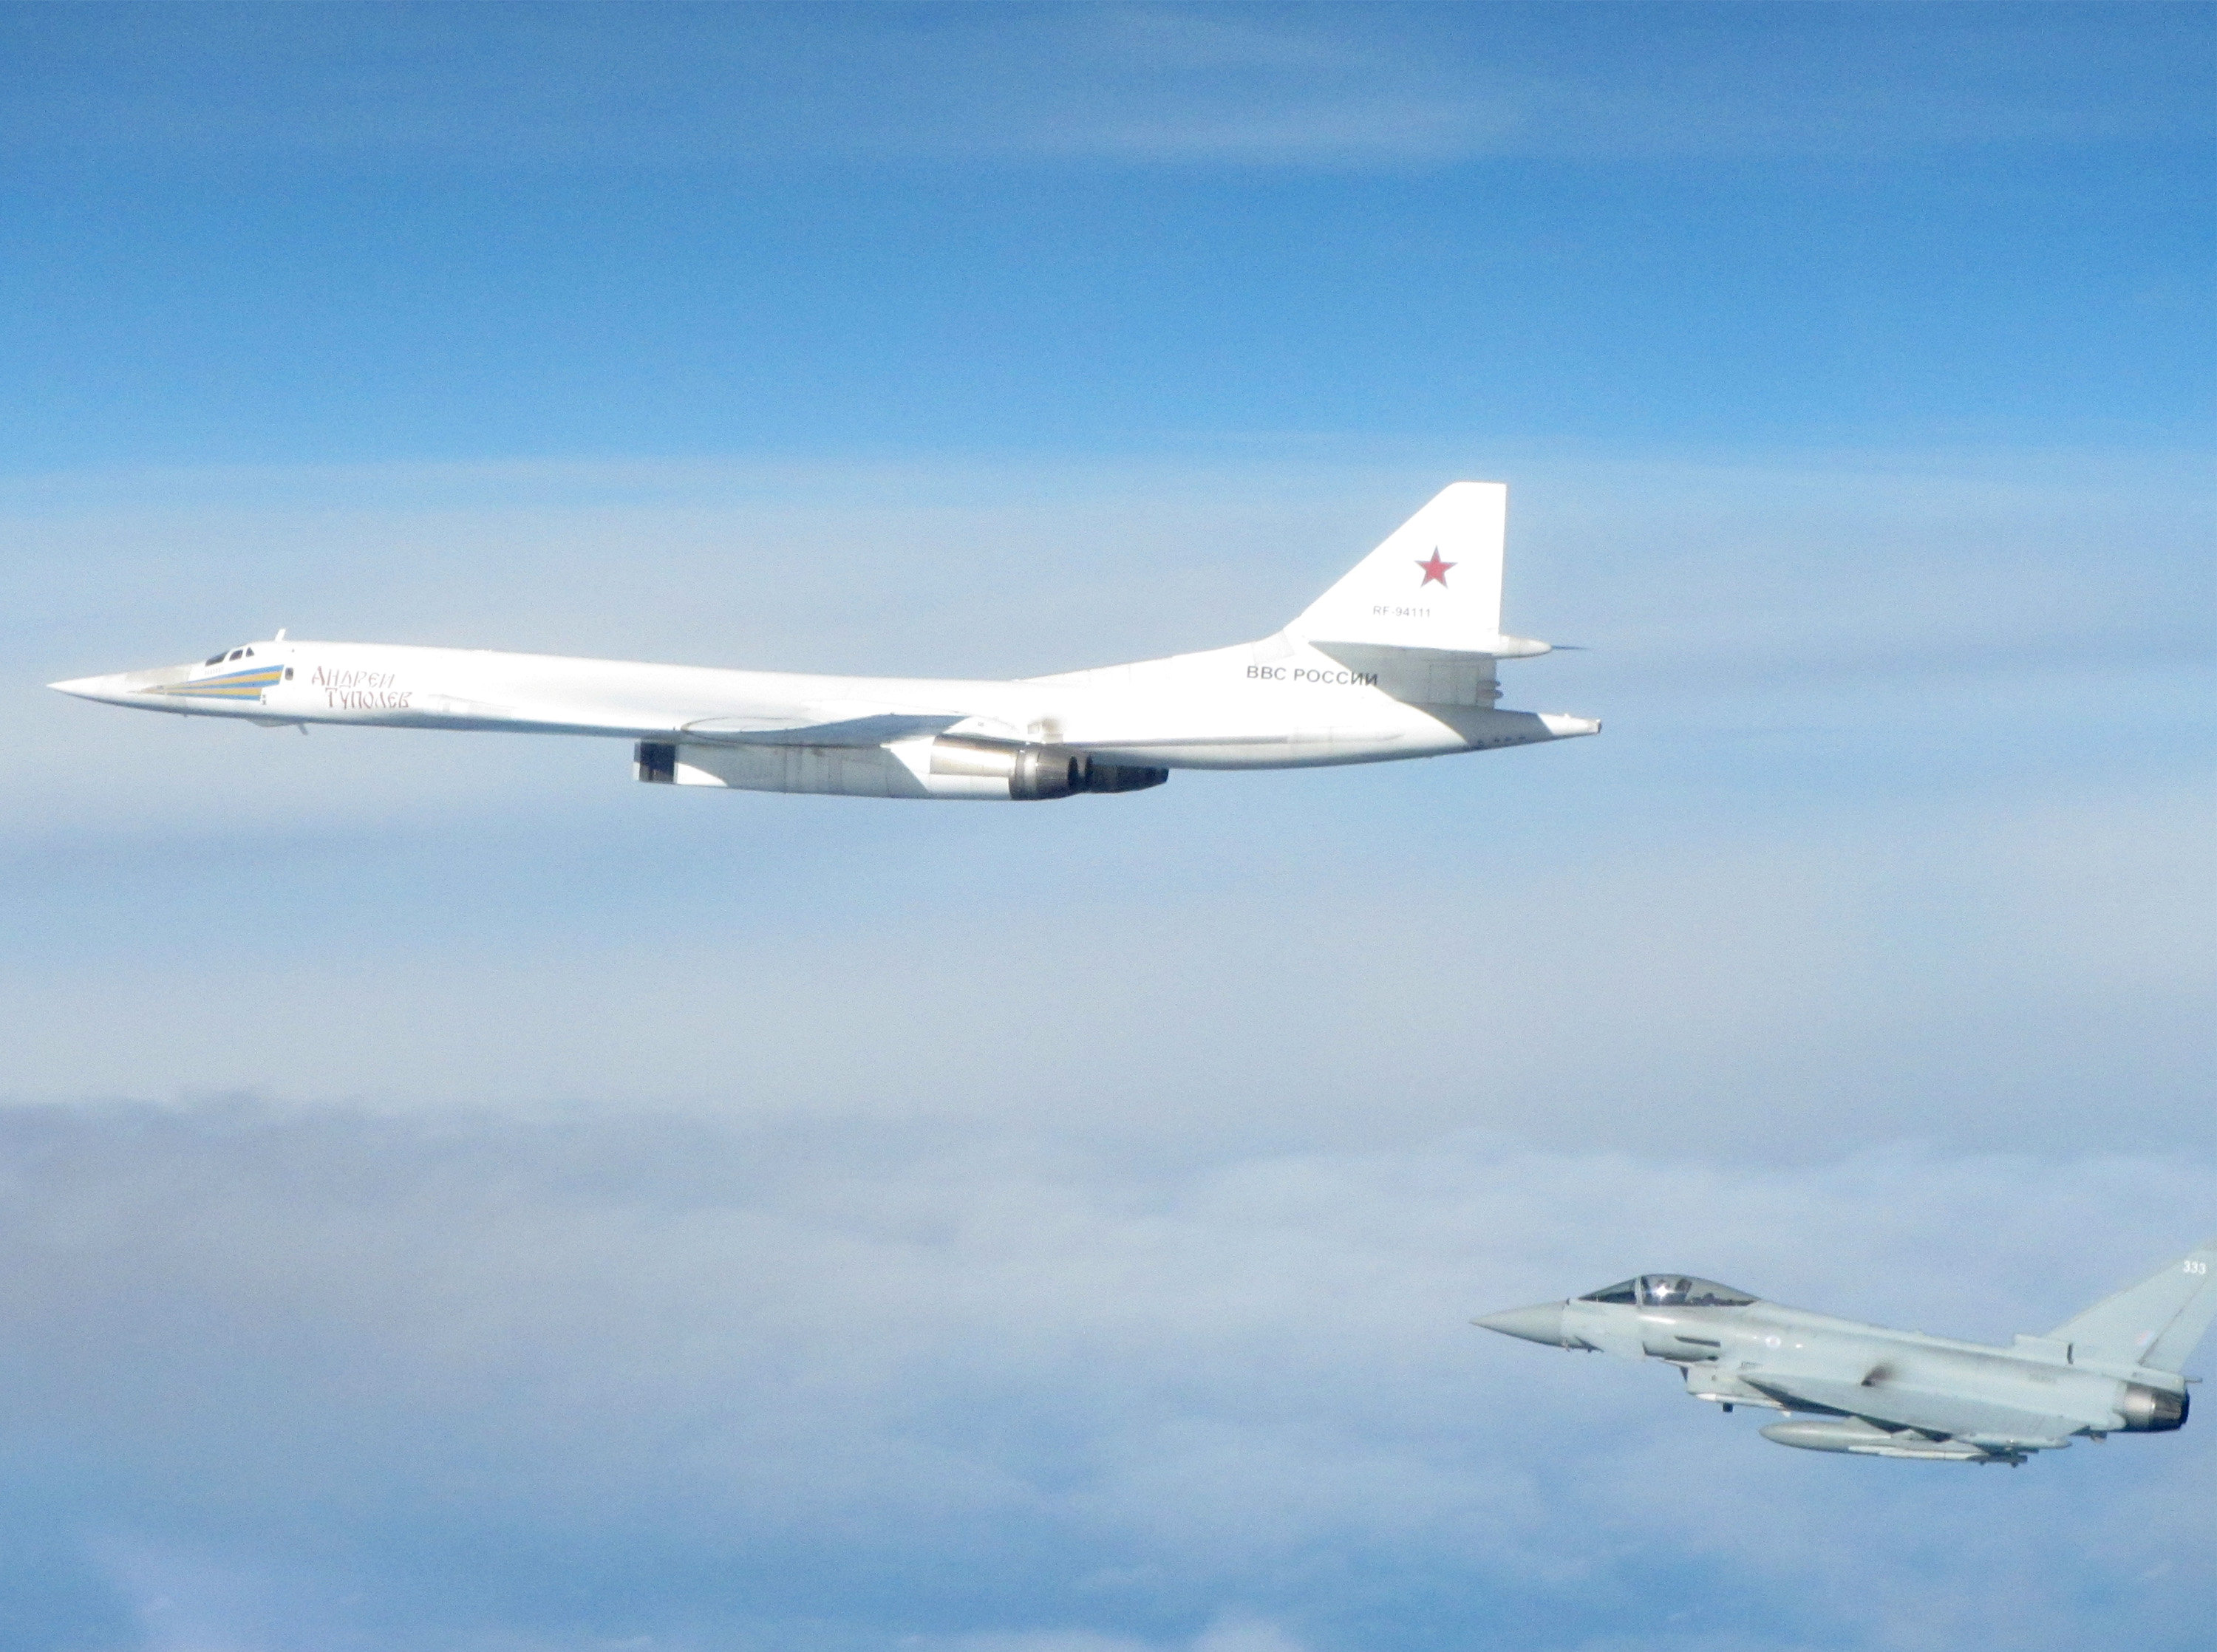 British Royal Air Force Typhoon fighter aircraft from RAF Lossiemouth intercept two Russian Long Range Blackjack bombers and escort them whilst in the UK area of interest. Photograph issued from Lossiemouth, Britain, September 20, 2018. RAF/Ministry of Defence/Handout via REUTERS